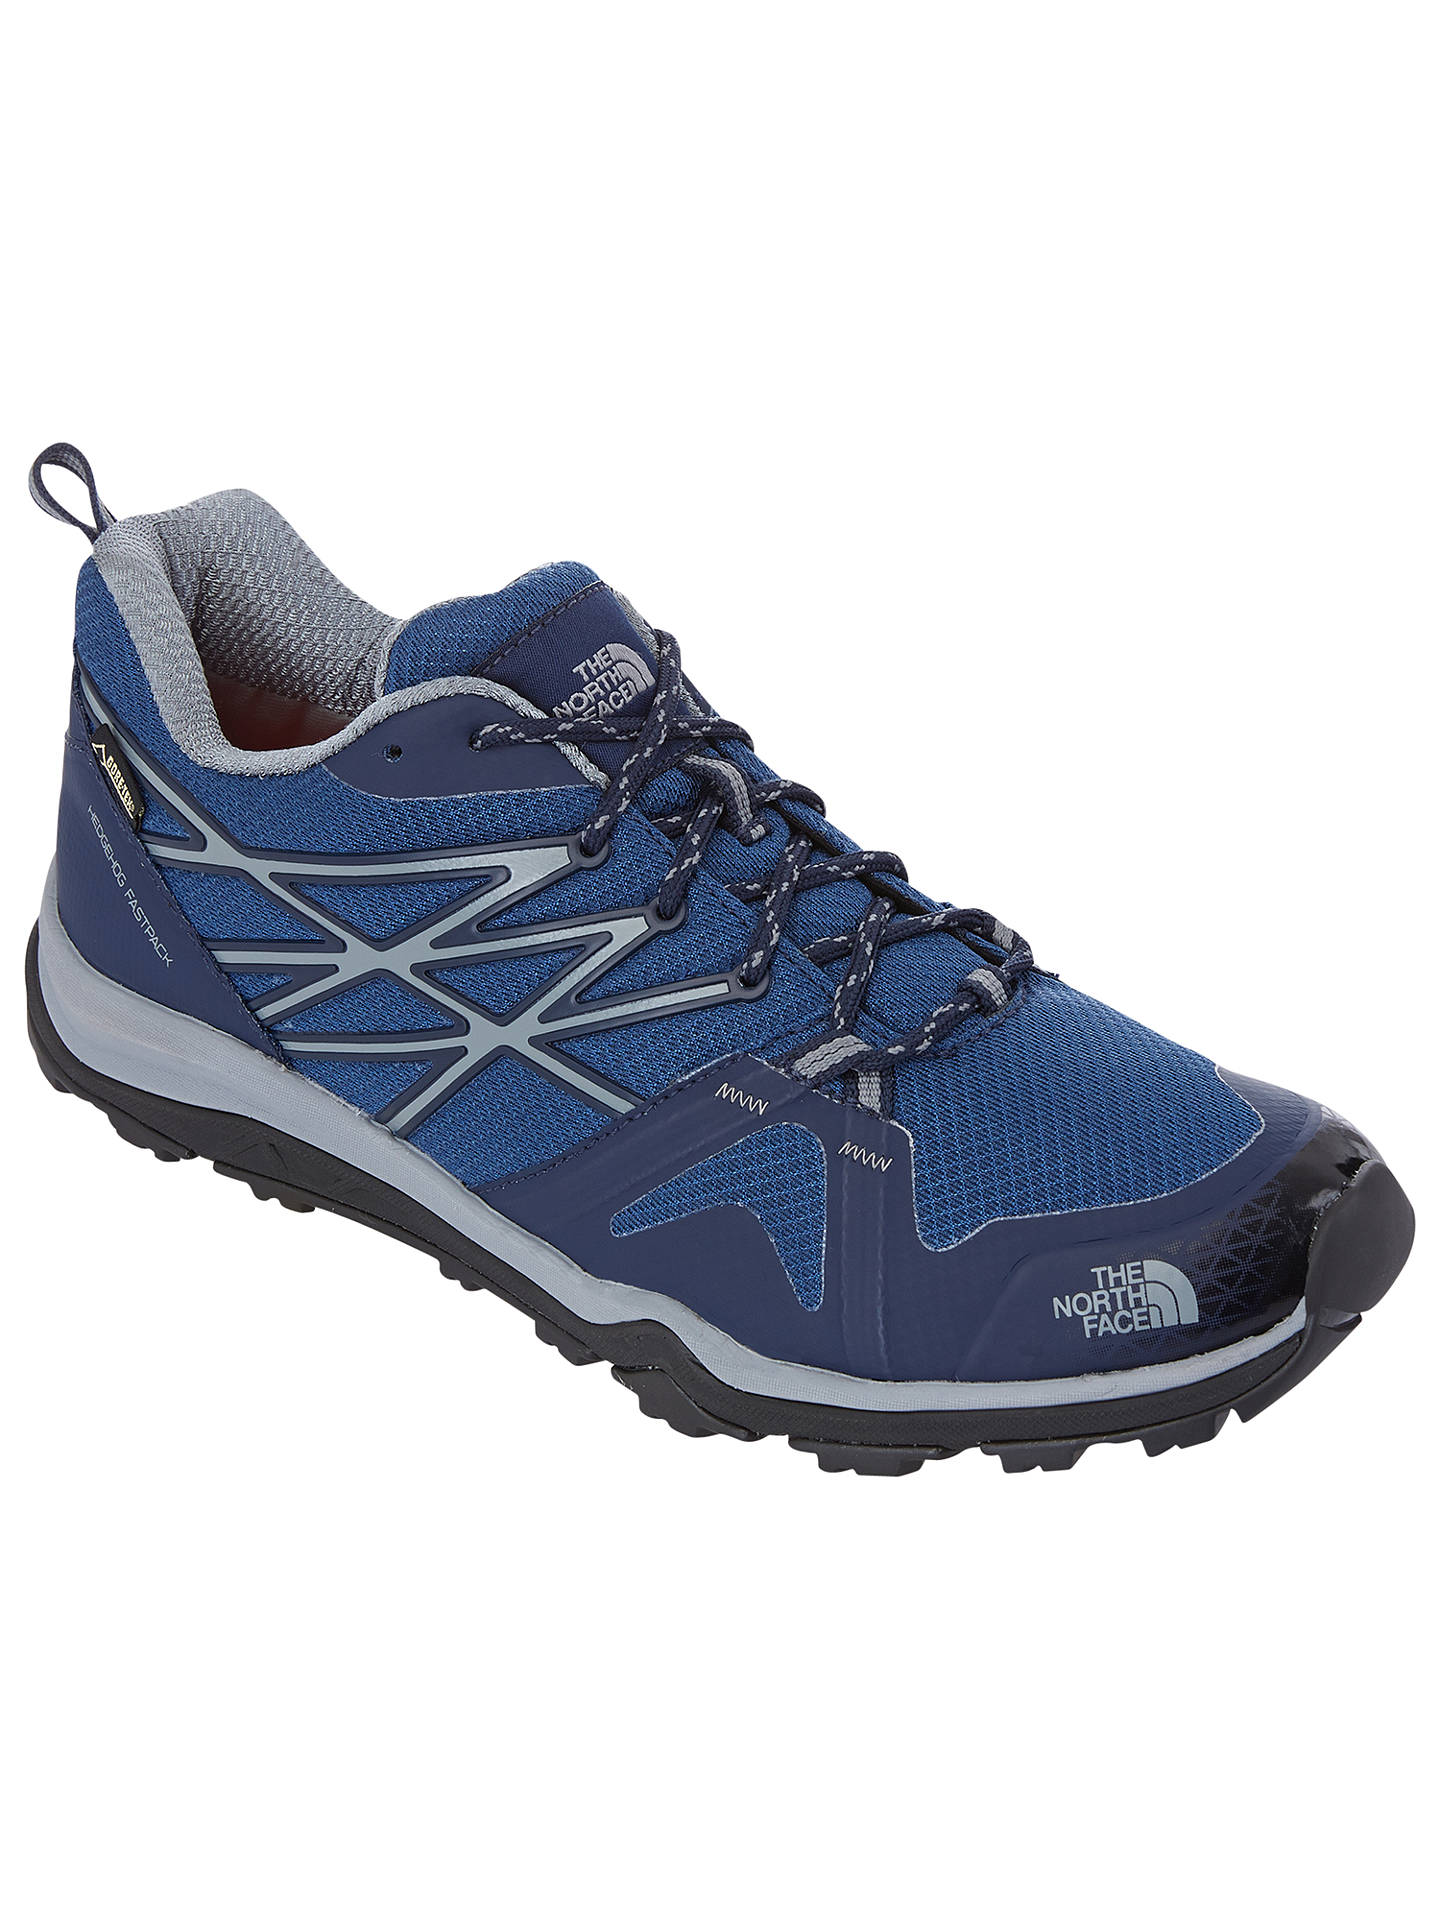 80243e2d5 The North Face Hedgehog Fastpack Lite Men's Hiking Shoes, Blue/Multi ...